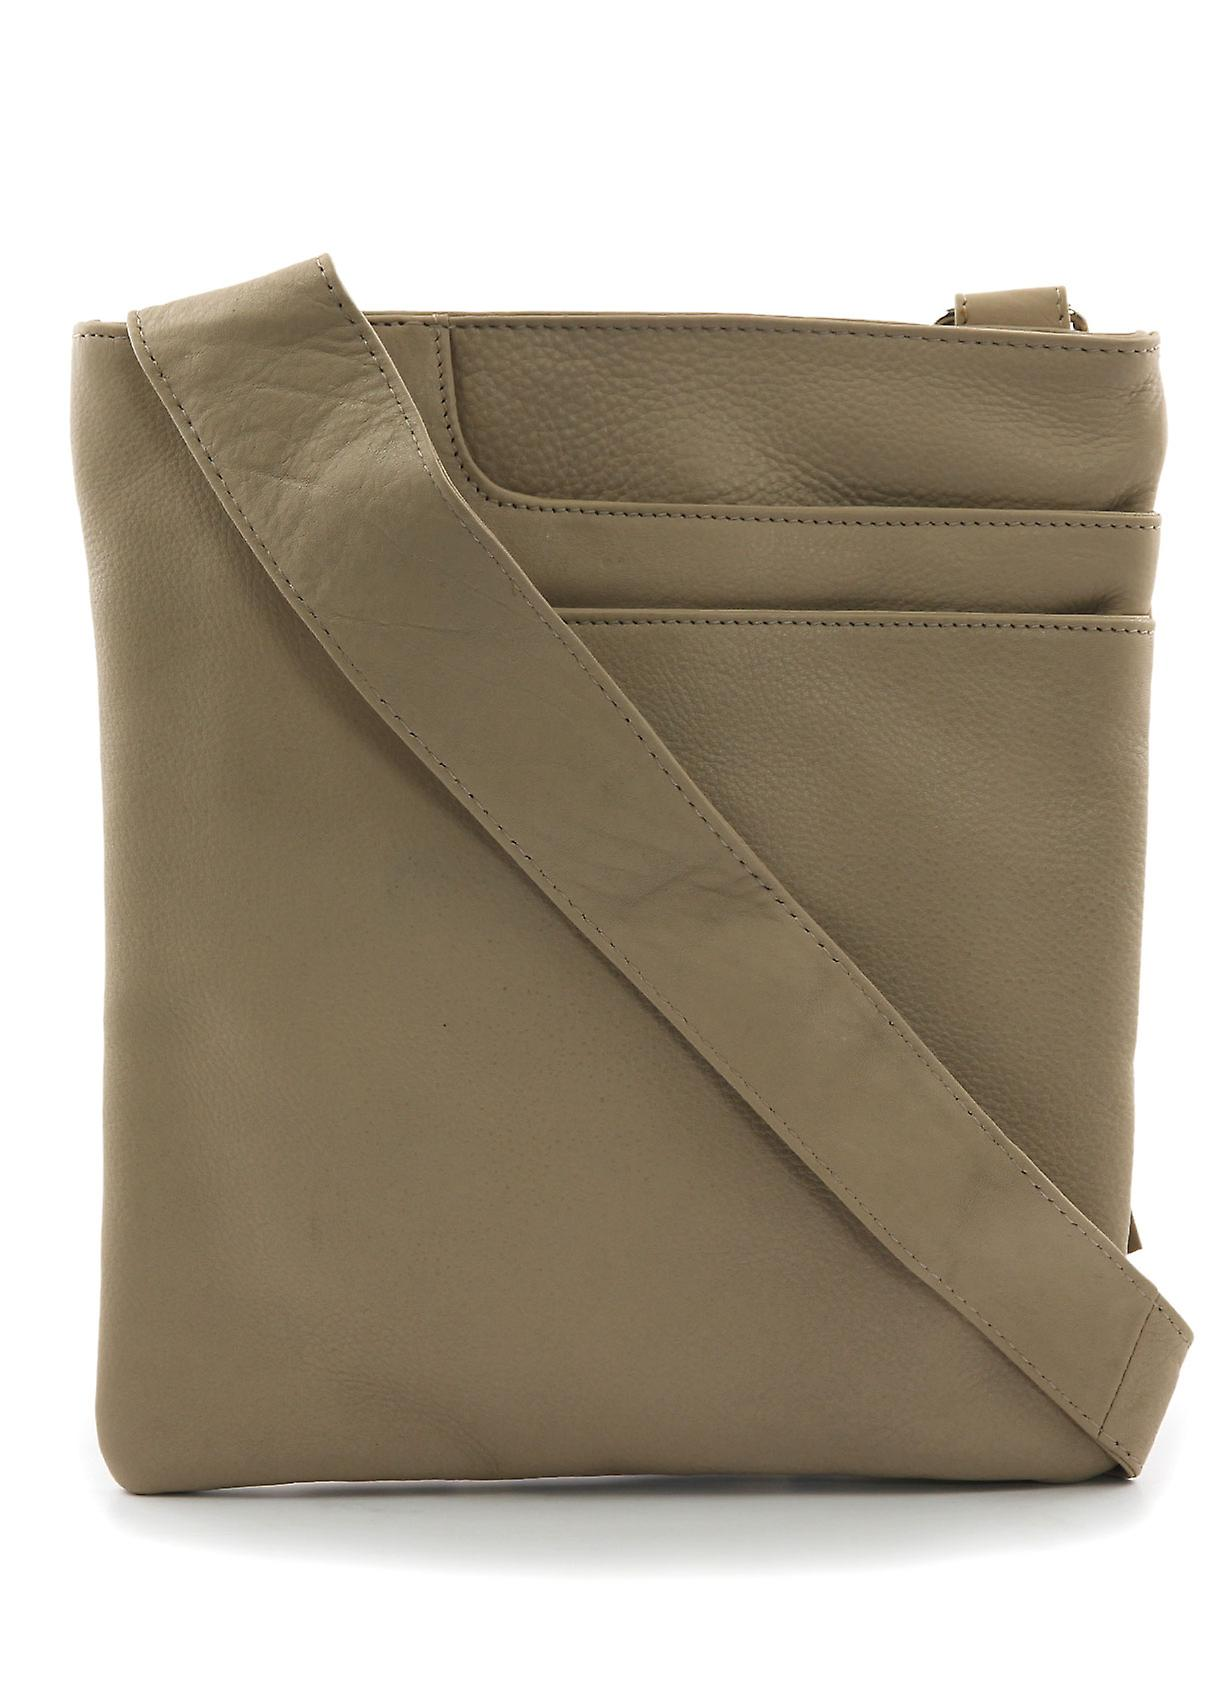 Alexsis Leather Across Body Bag in Almond